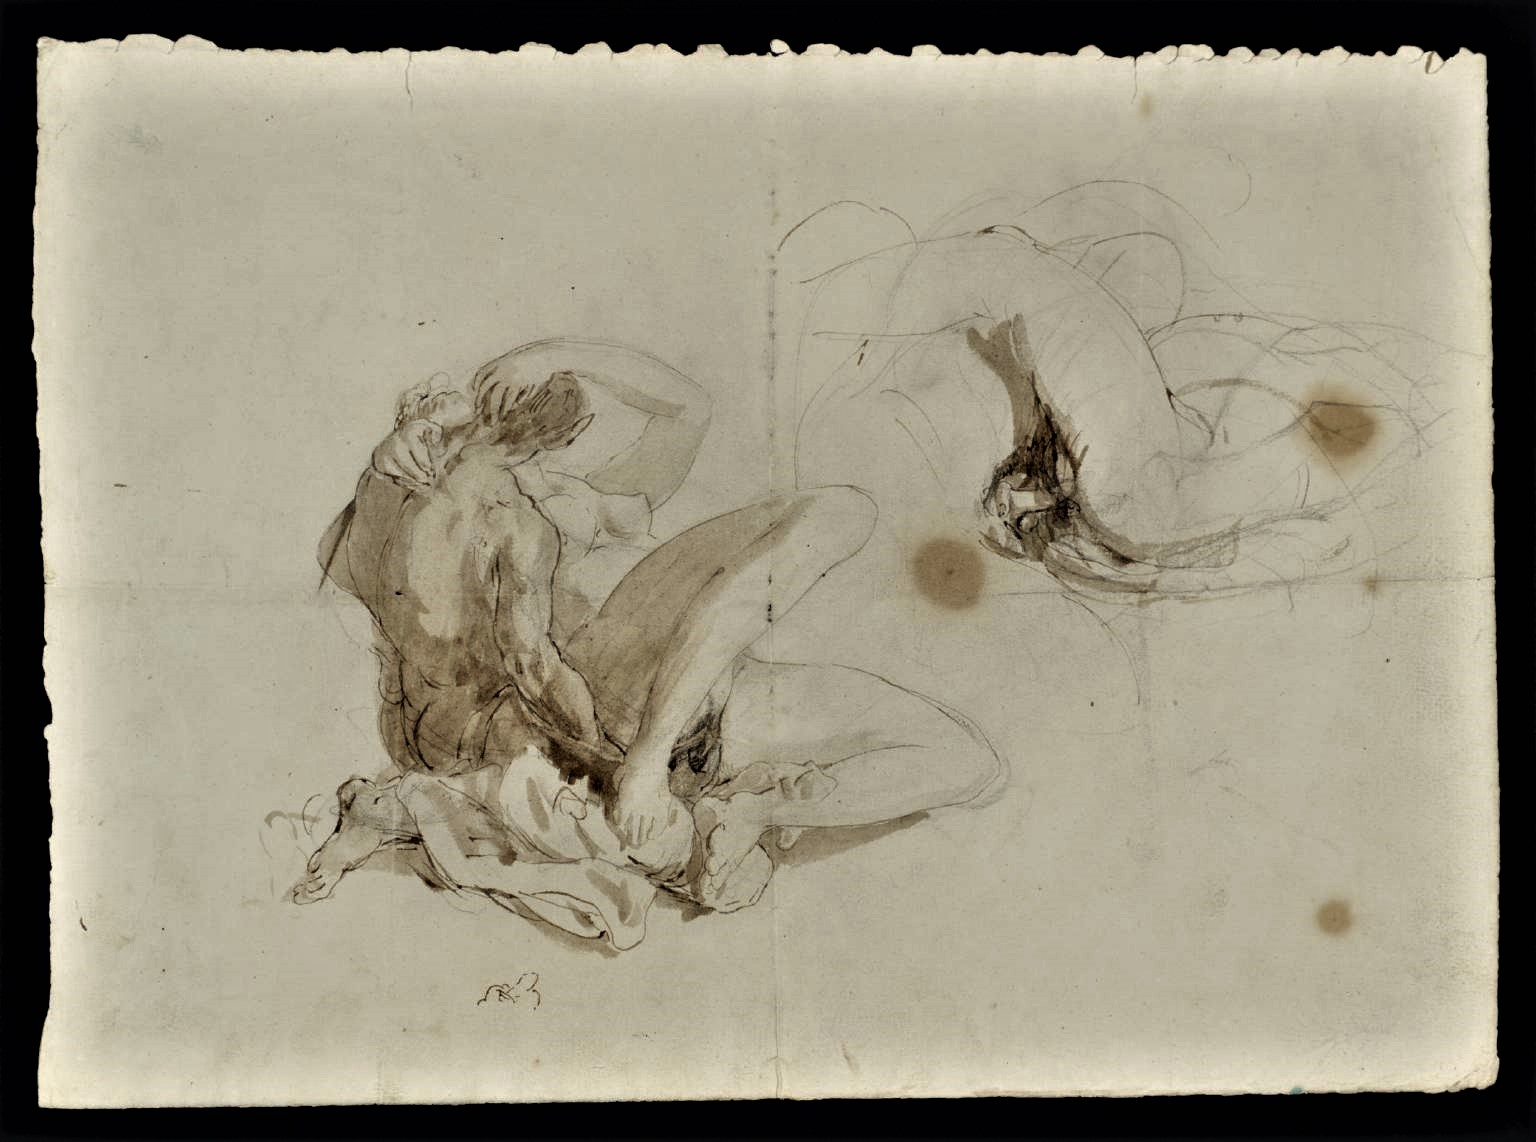 Erotic Figure Studies circa 1805 by Joseph Mallord William Turner 1775-1851